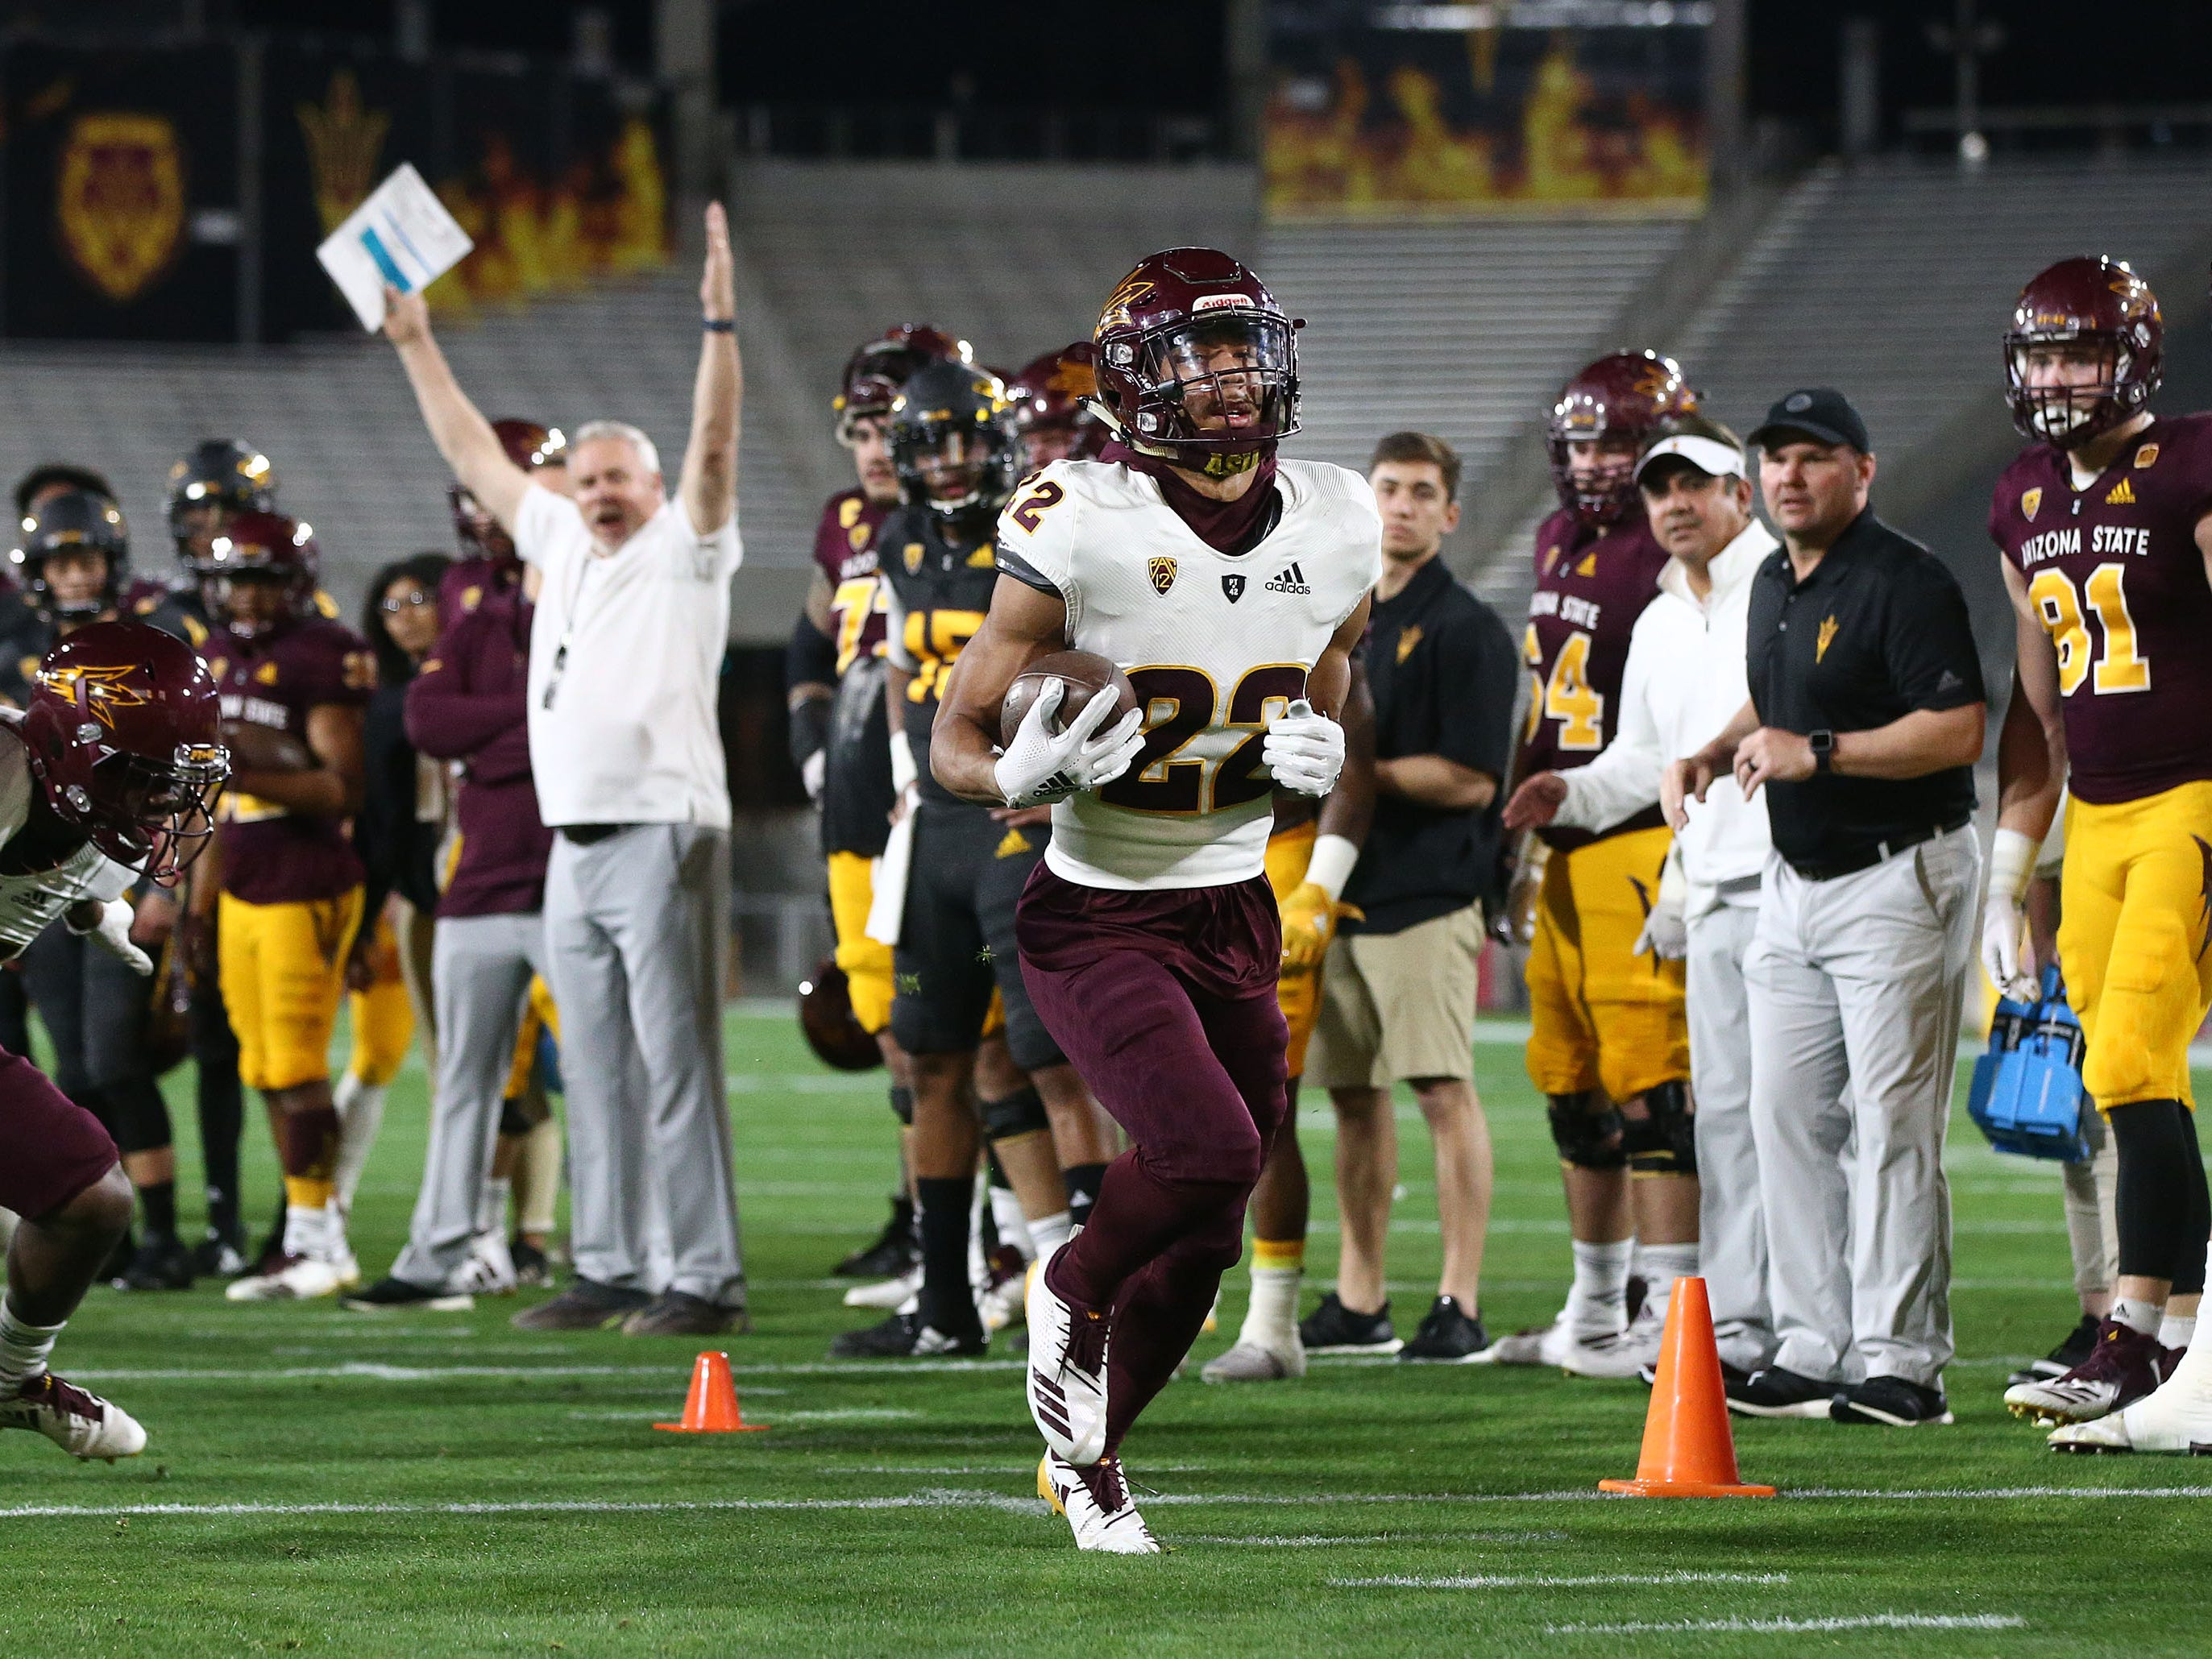 Arizona State defensive back Darien Cornan runs for a touchdown during the spring practice game on Feb. 28, 2019 at Sun Devil Stadium in Tempe, Ariz.